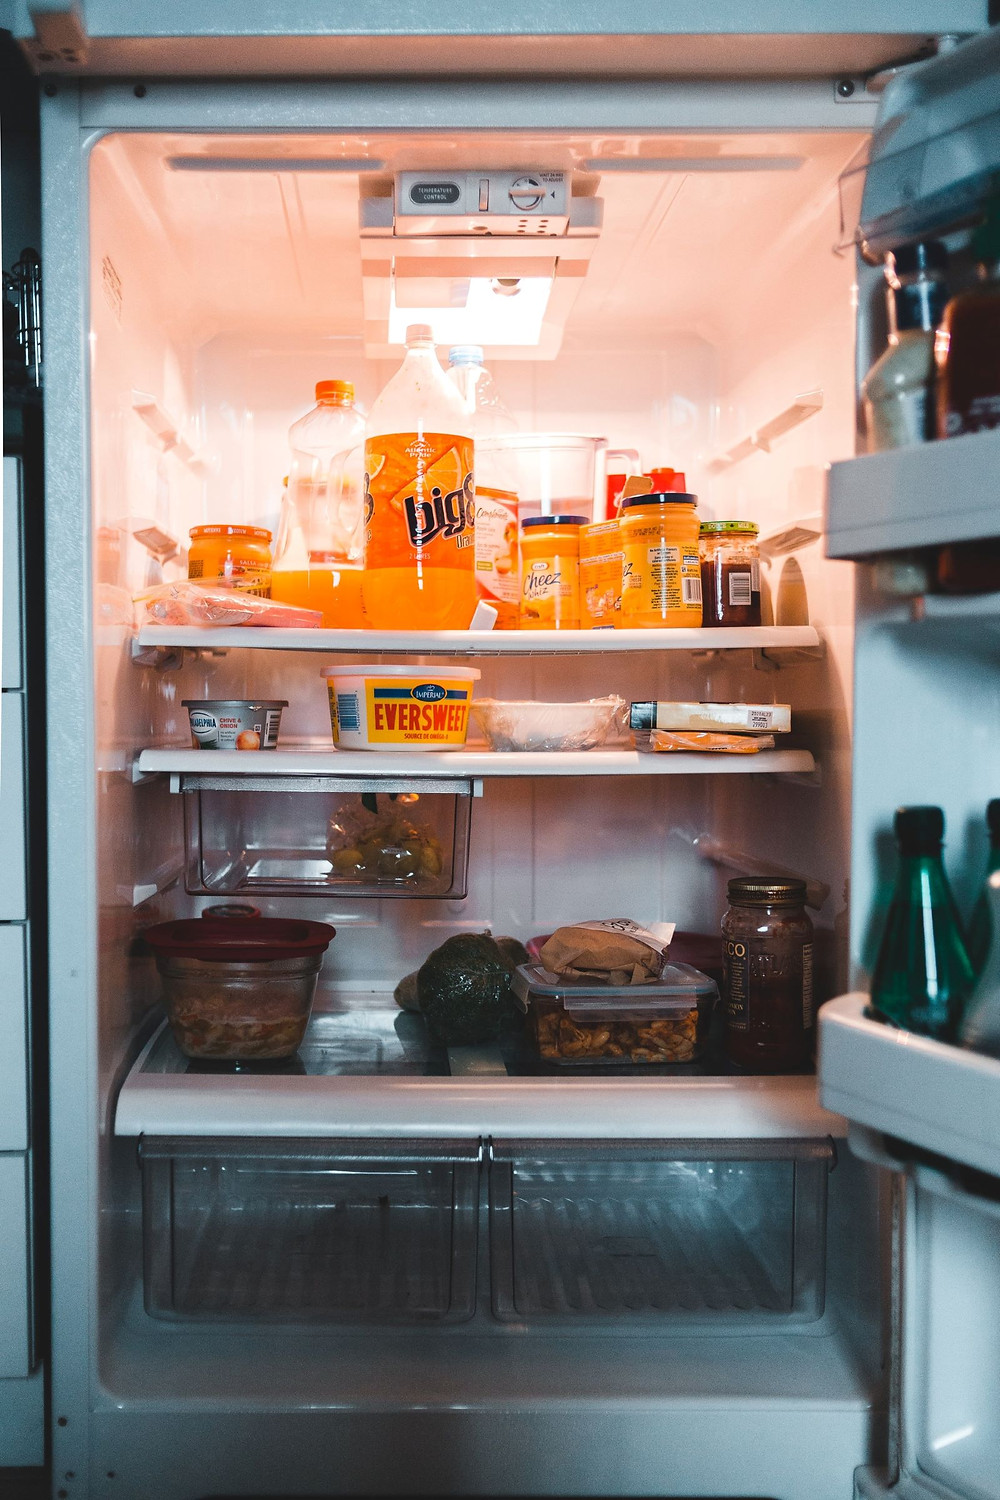 mold in refrigerator, how to get rid of mold in refrigerator, moldy fridge, how to clean a moldy fridge